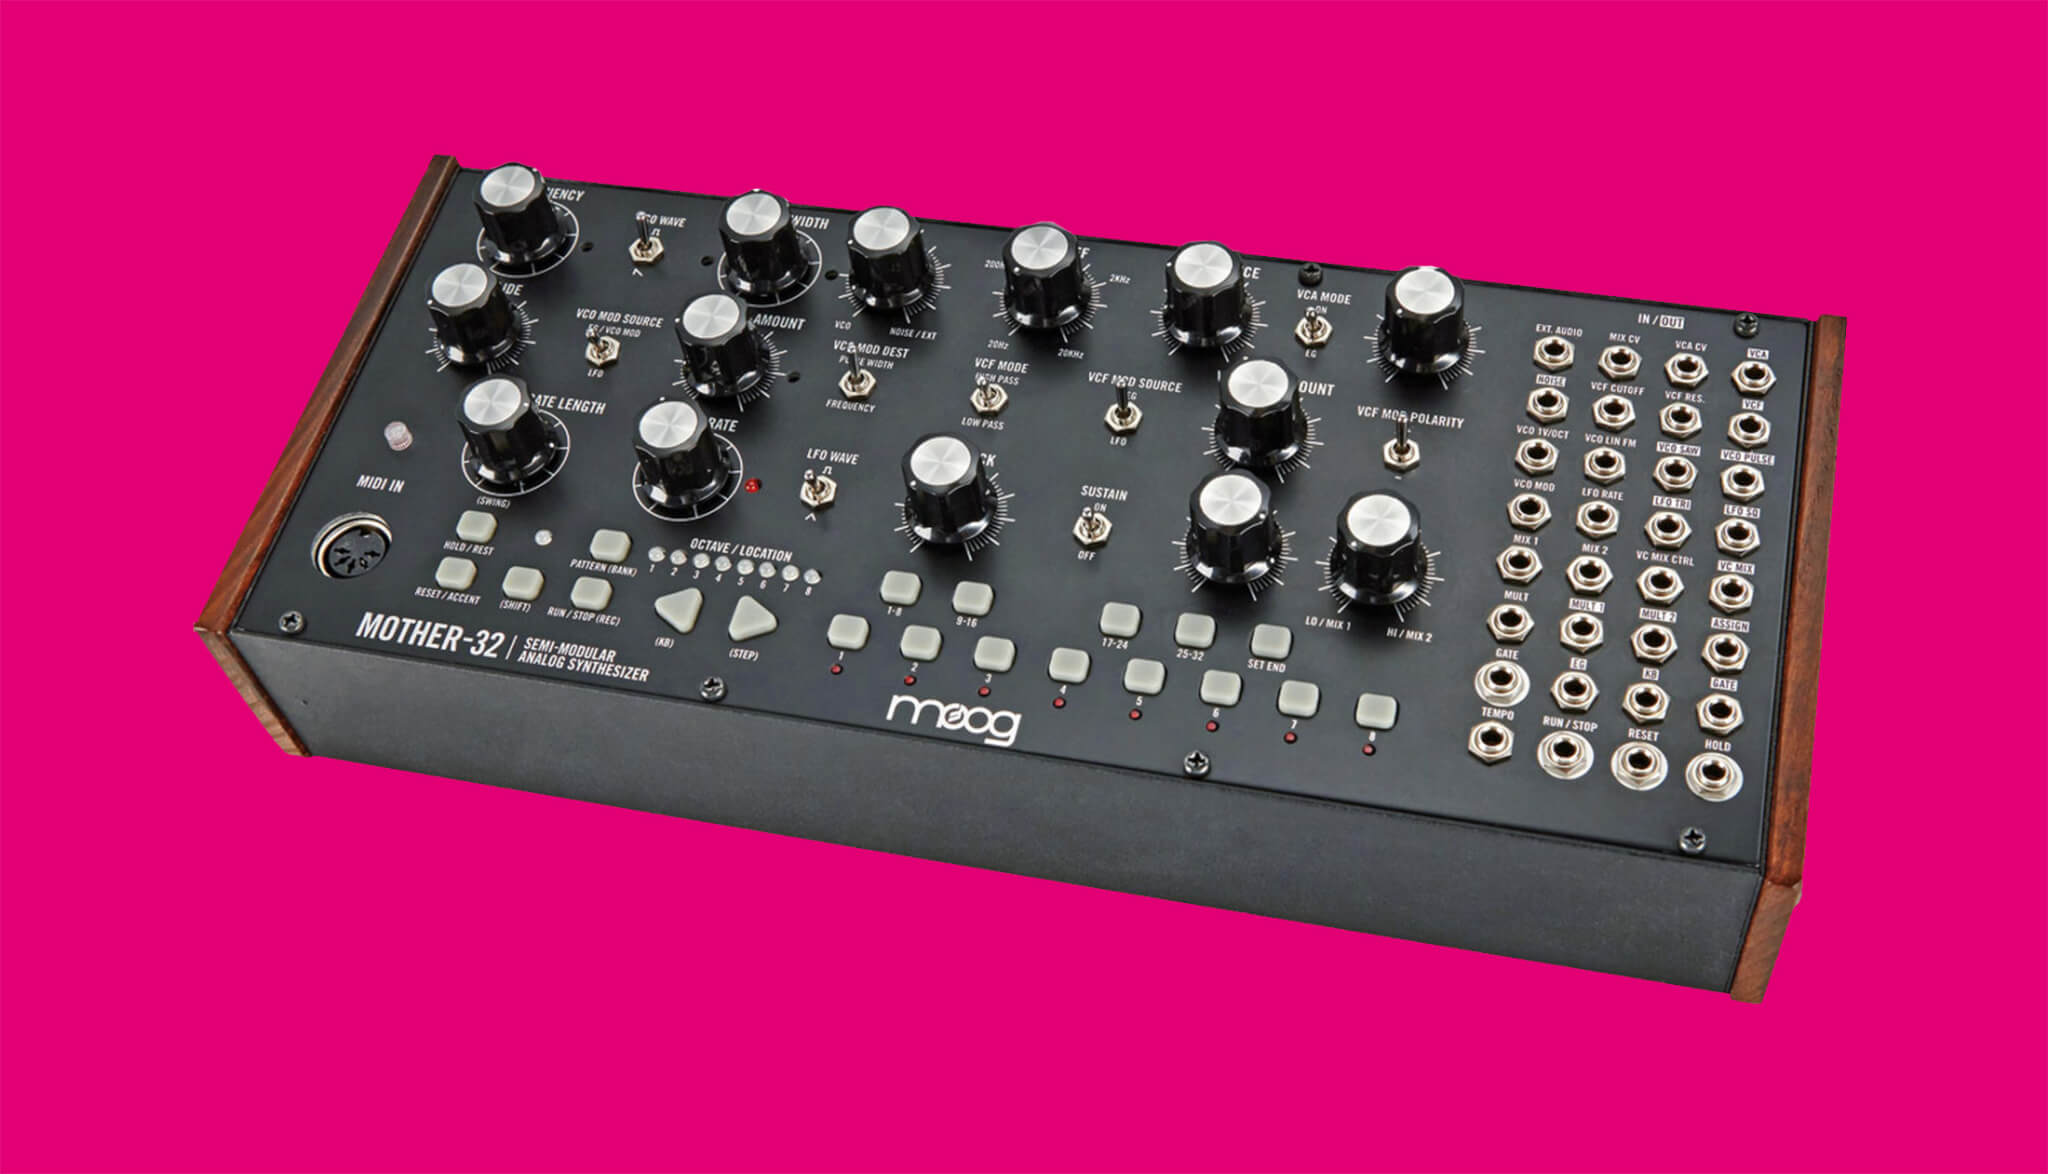 Download A Free Collection Of Moog Mother 32 Samples For